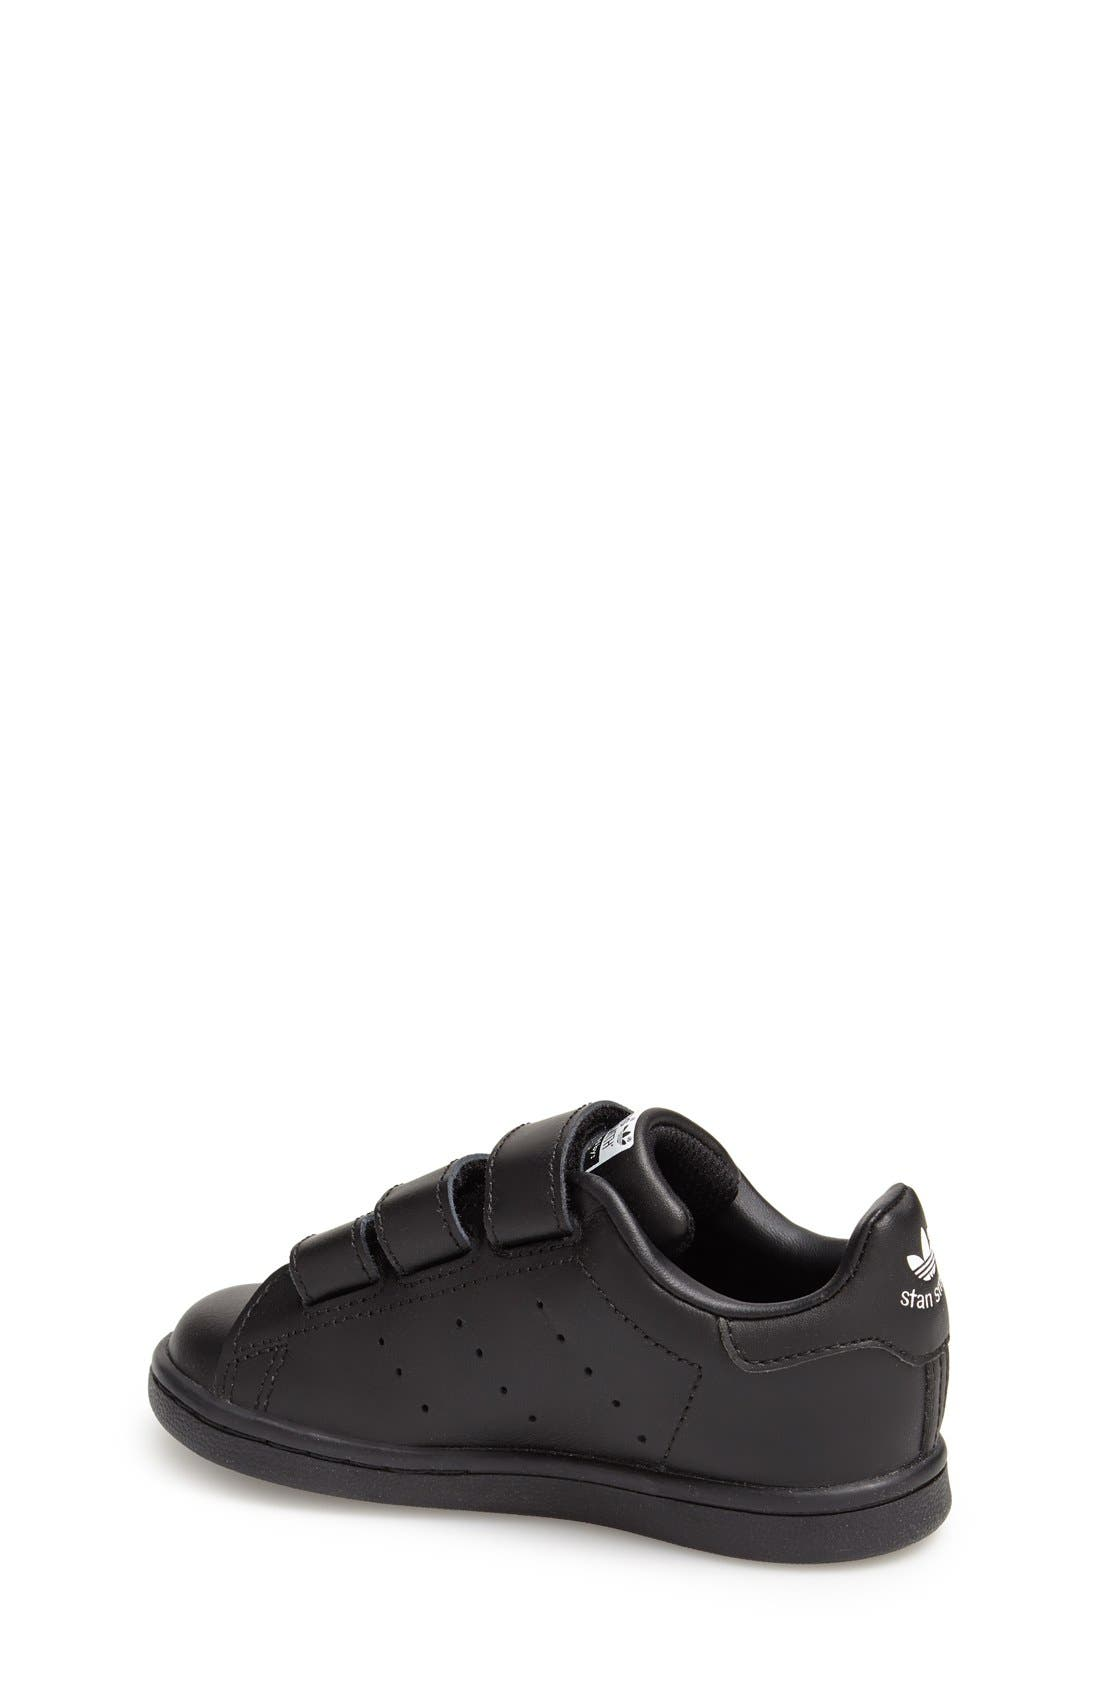 adidas \u0027Stan Smith\u0027 Leather Sneaker (Baby, Walker \u0026 Toddler) | Nordstrom